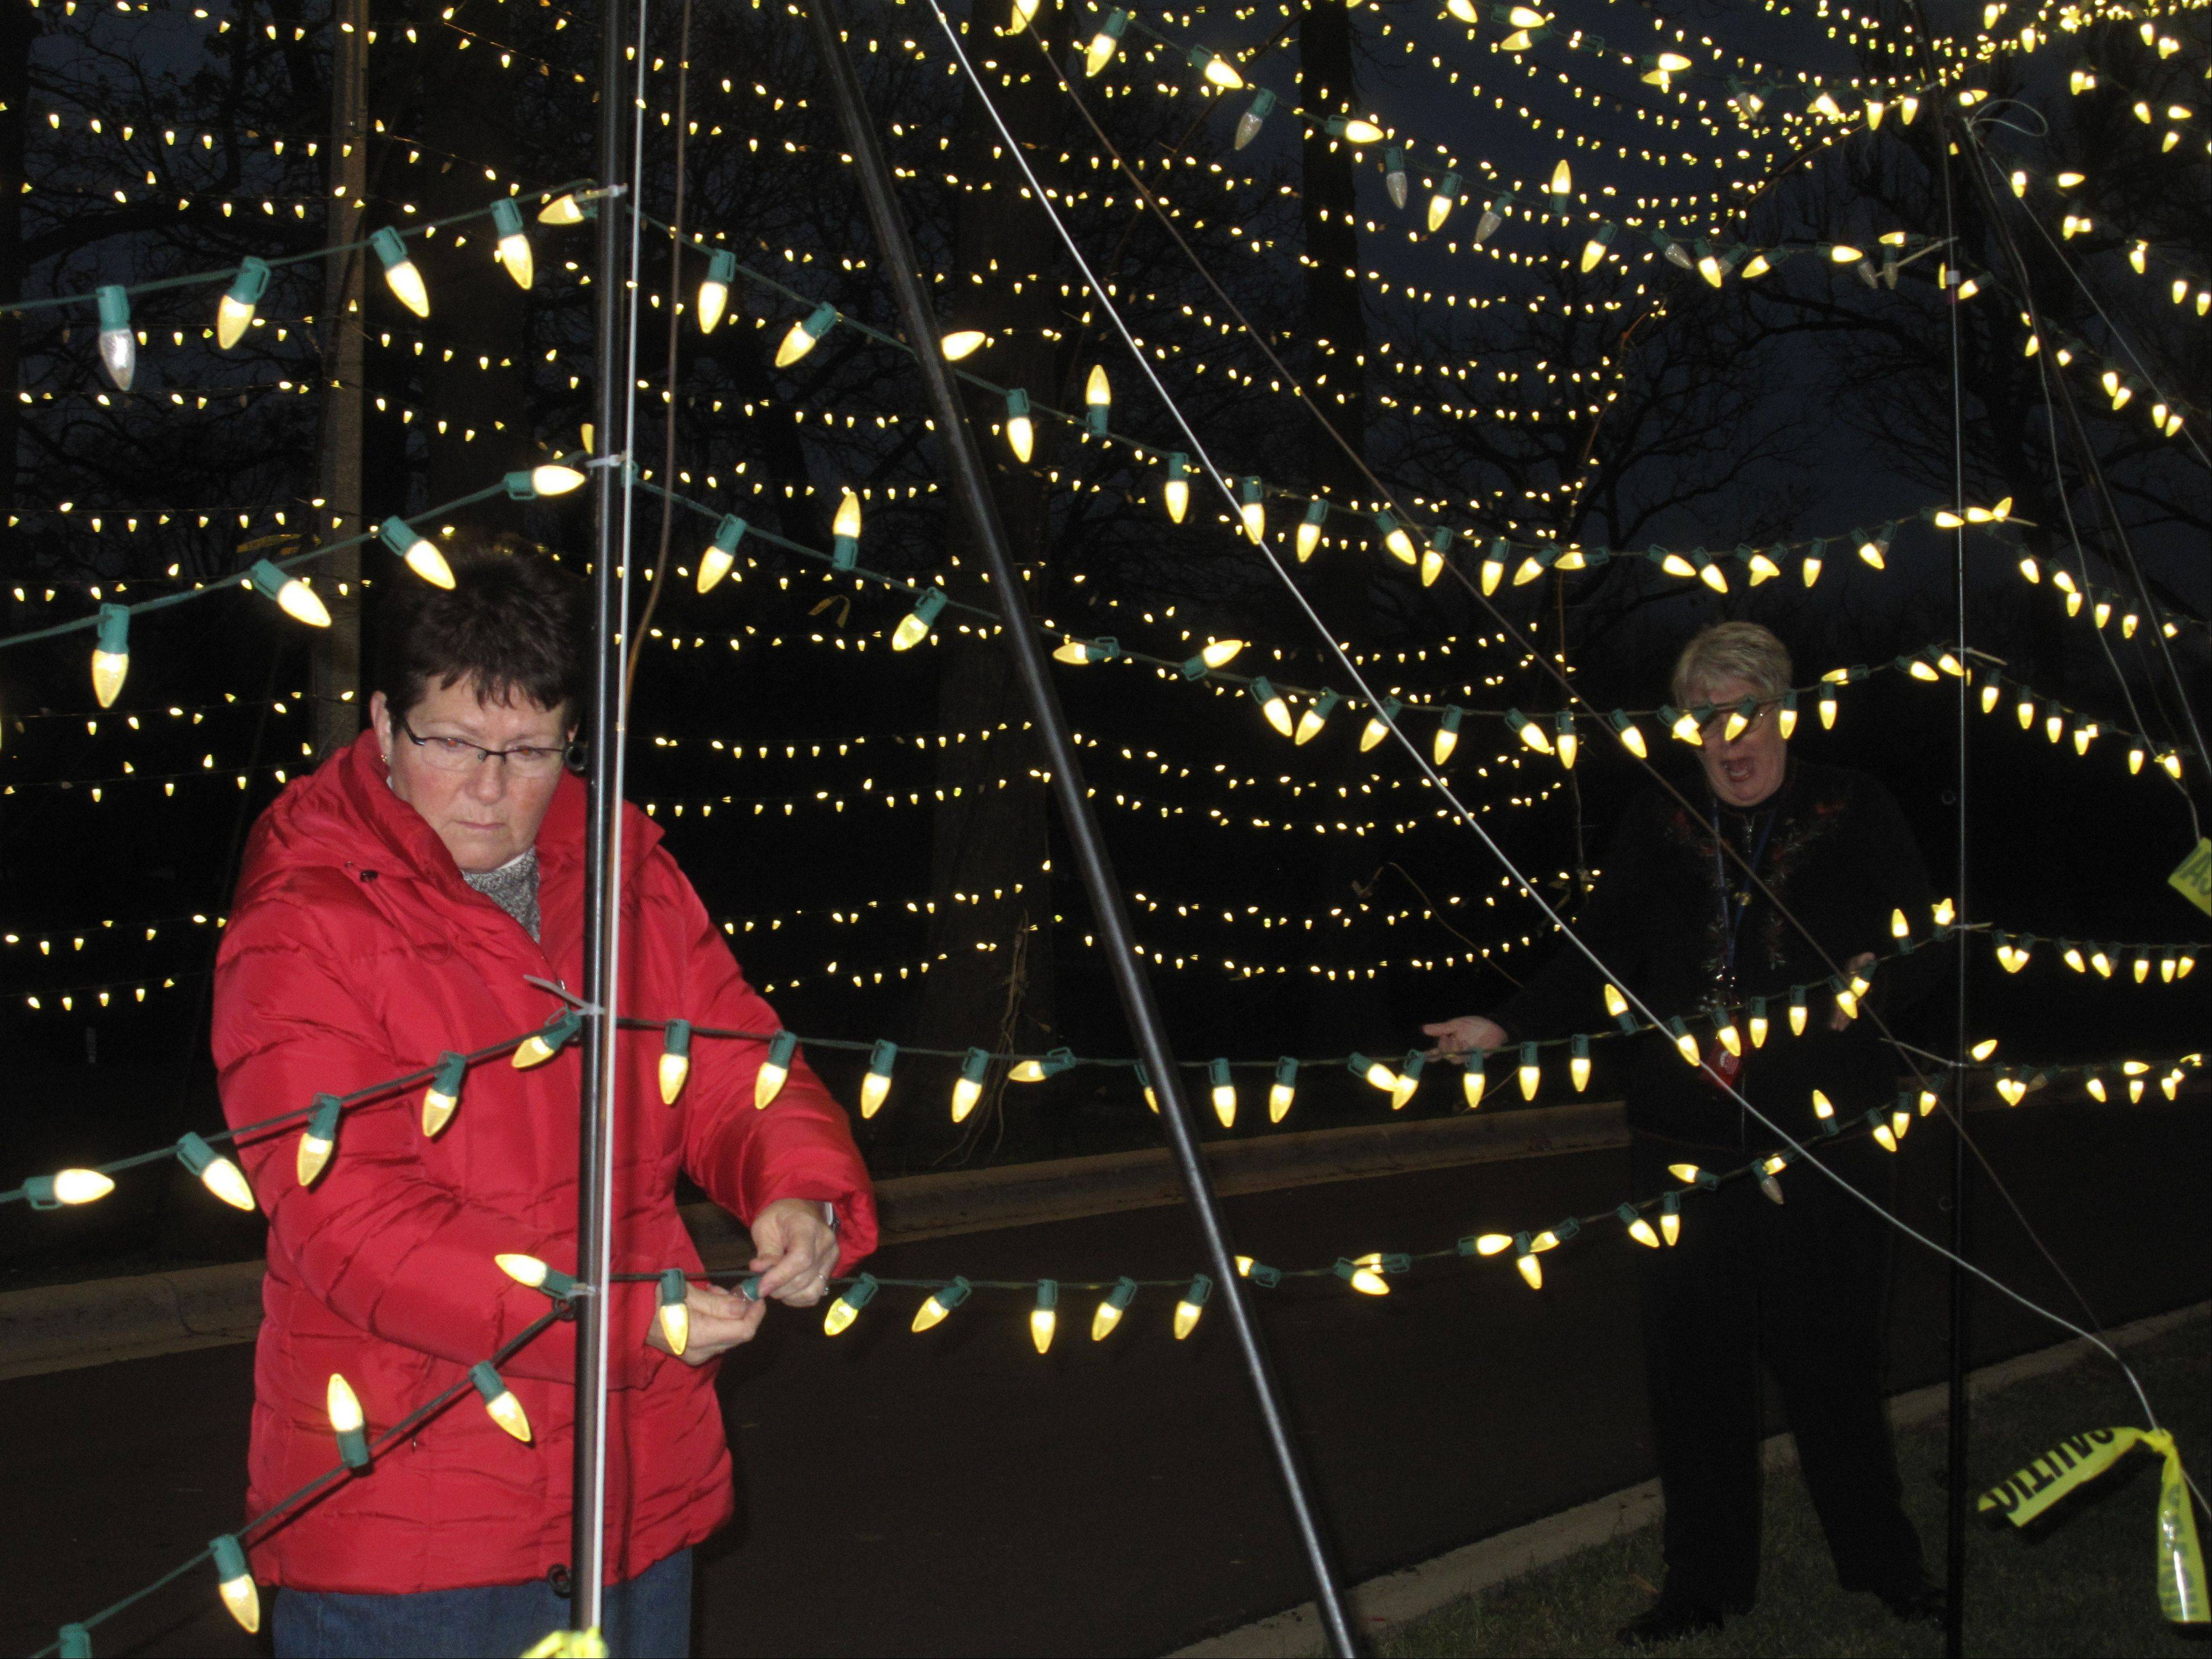 Nearly 21,200 cars drove through Aurora's Festival of Lights display last year at Phillips Park. Organizers from the city and Rotary Club of Aurora are hoping for even bigger crowds when the display reopens on Nov. 29.